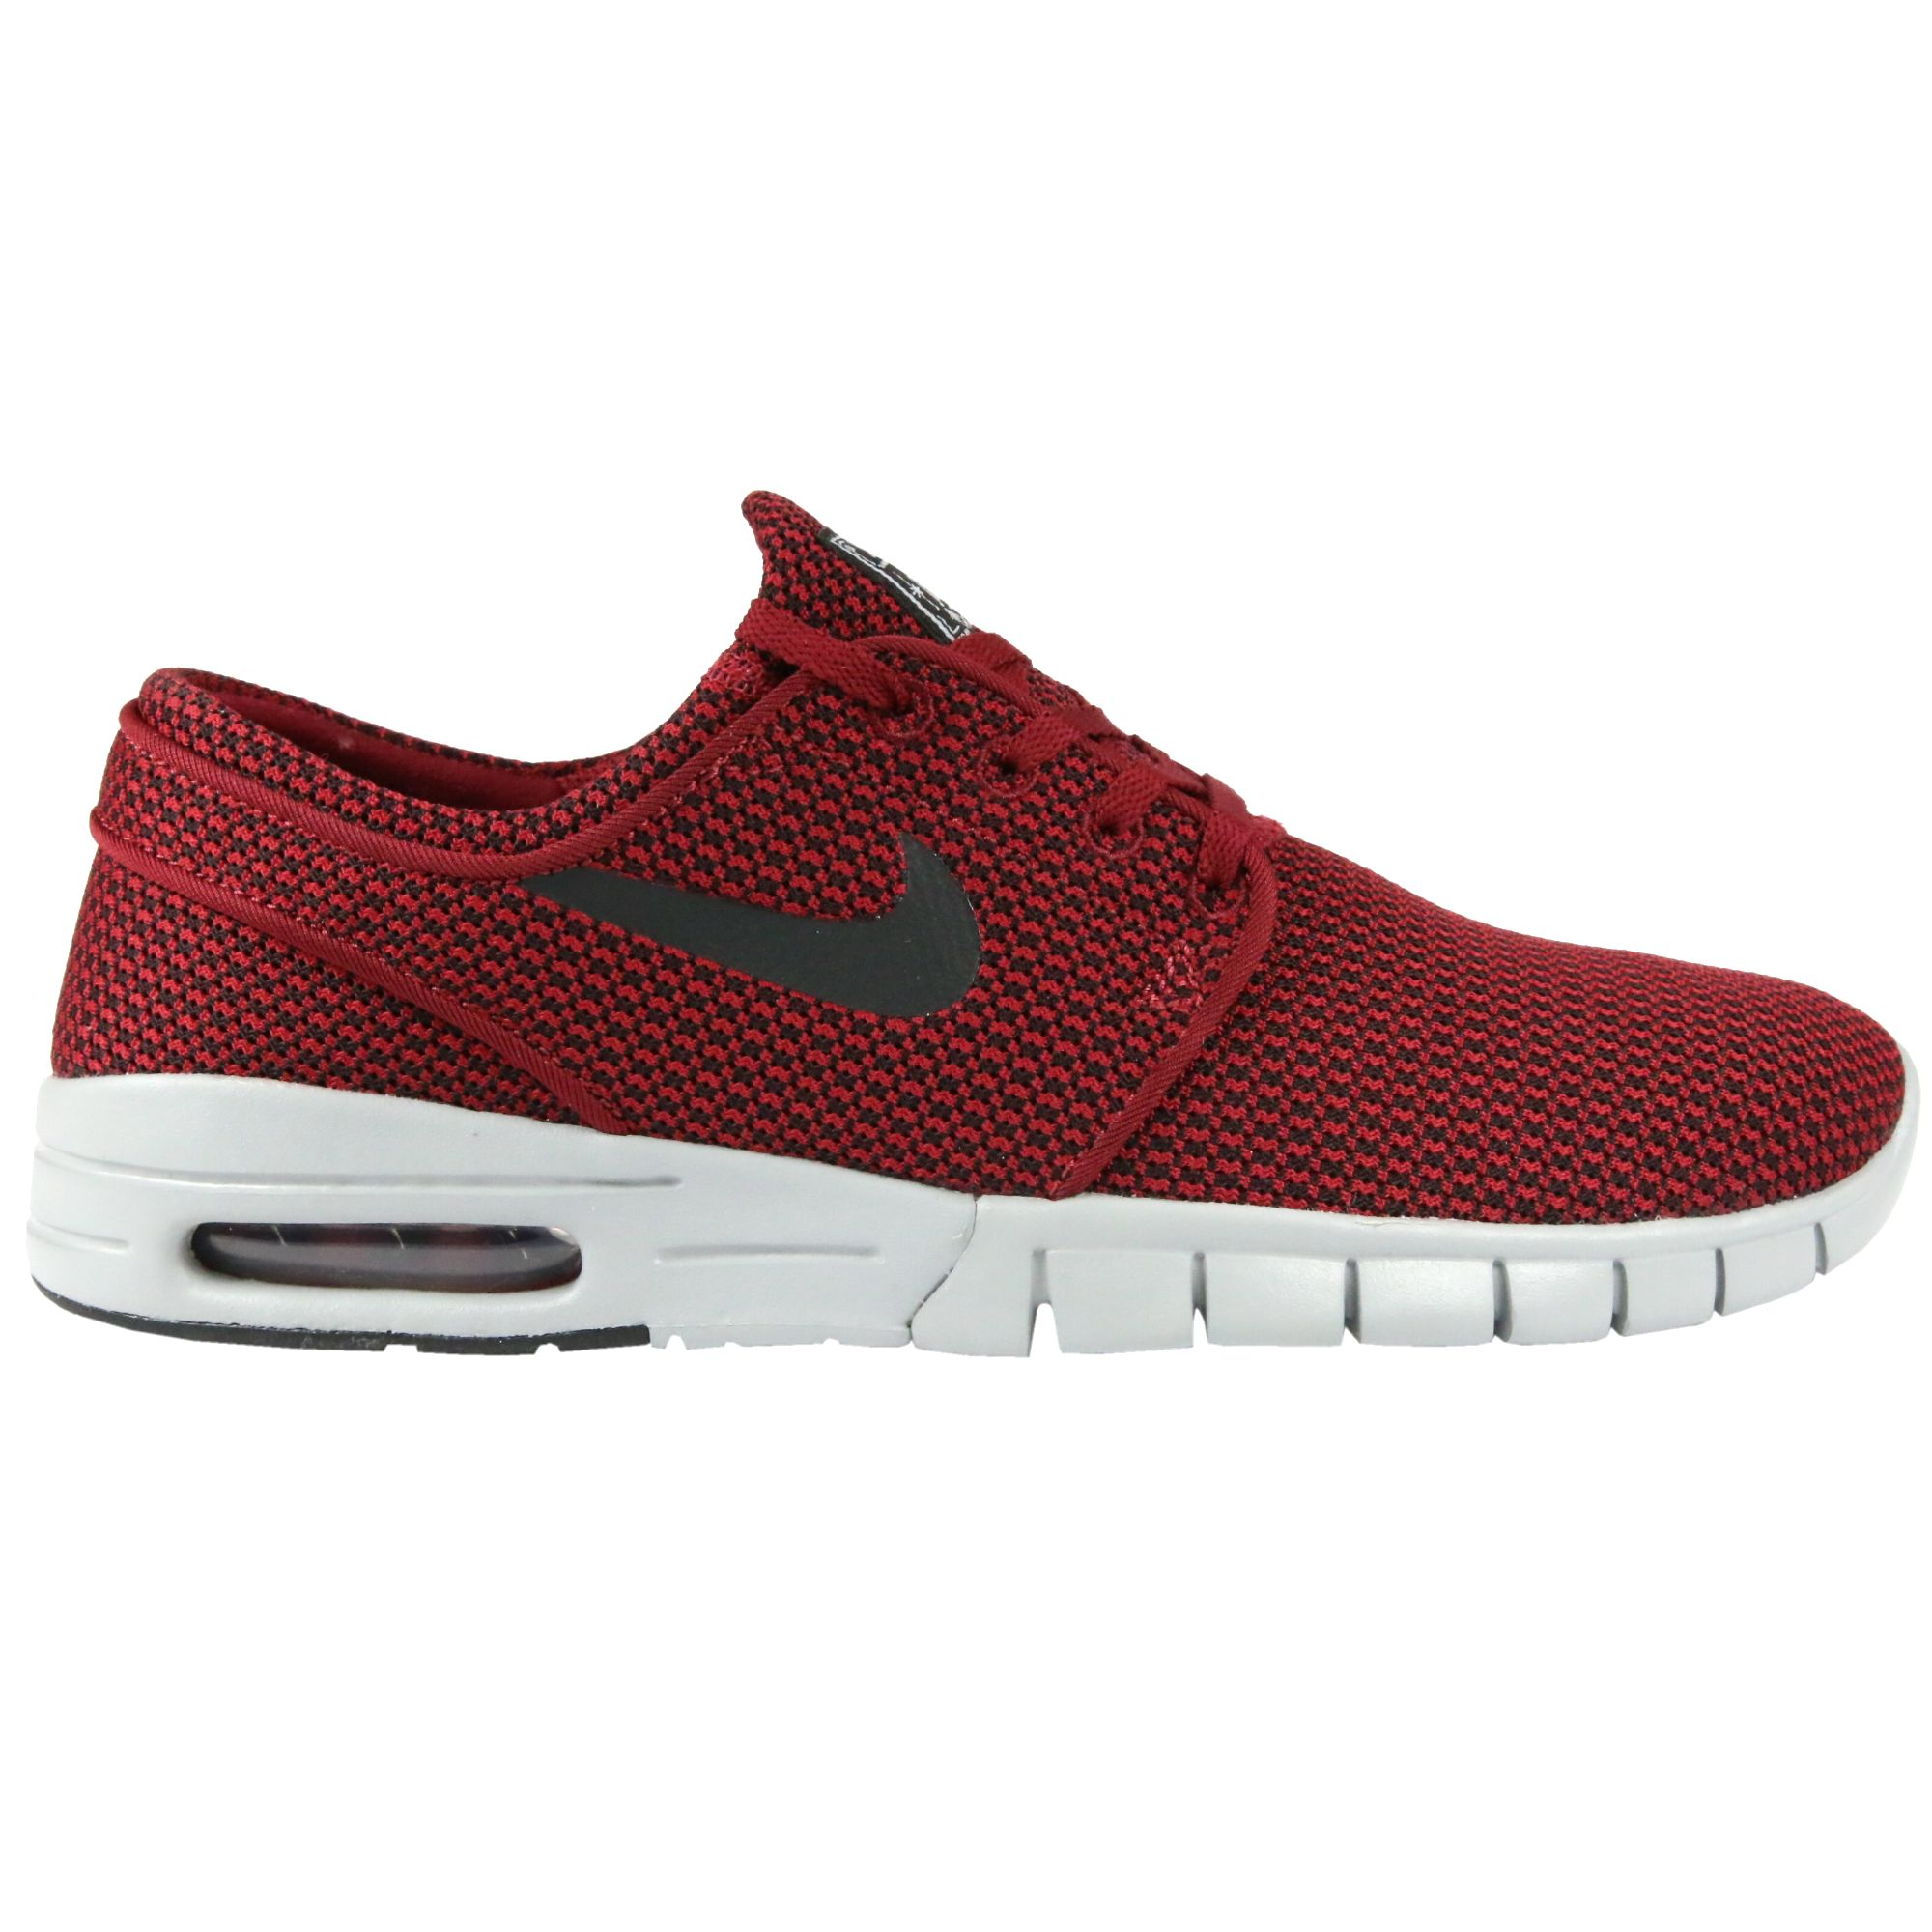 nike sb stefan janoski max shoes trainers sneakers men 39 s ebay. Black Bedroom Furniture Sets. Home Design Ideas